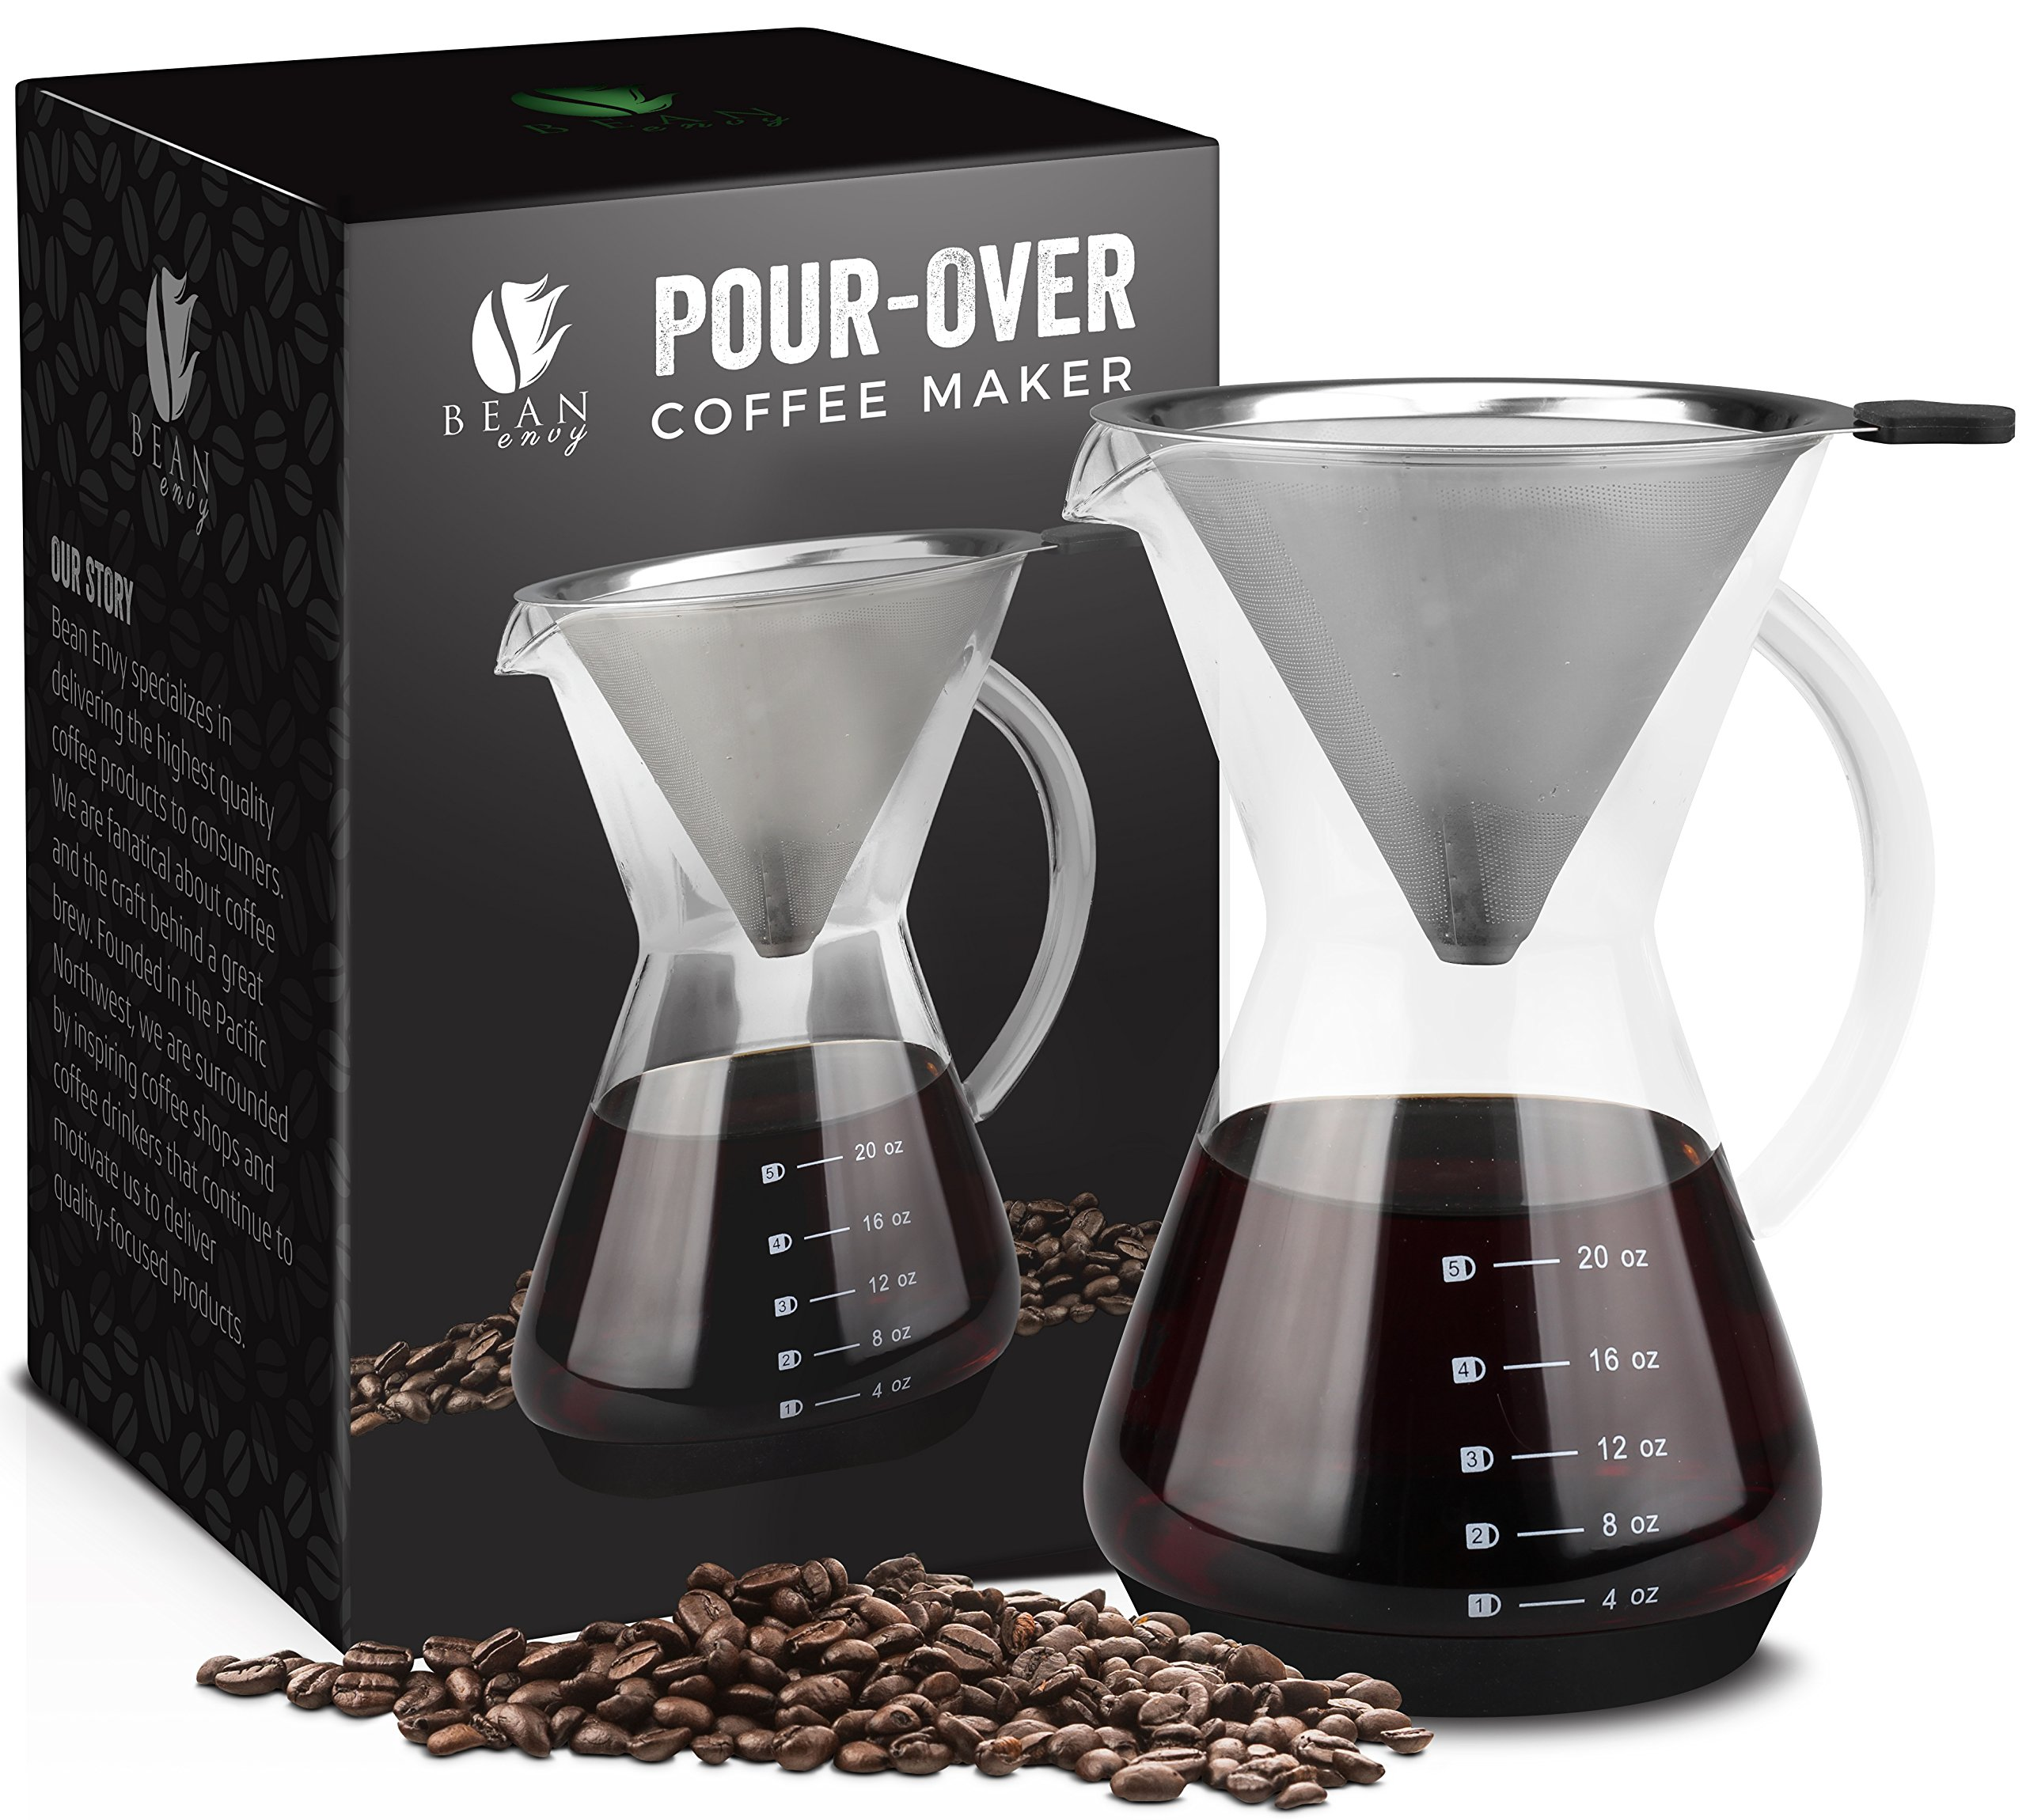 Bean Envy Pour Over Coffee Maker - 20 - oz Borosilicate Glass Carafe - Rust Resistant Stainless Steel Paperless Filter - Includes Patent Pending Silicone Sleeve by Bean Envy